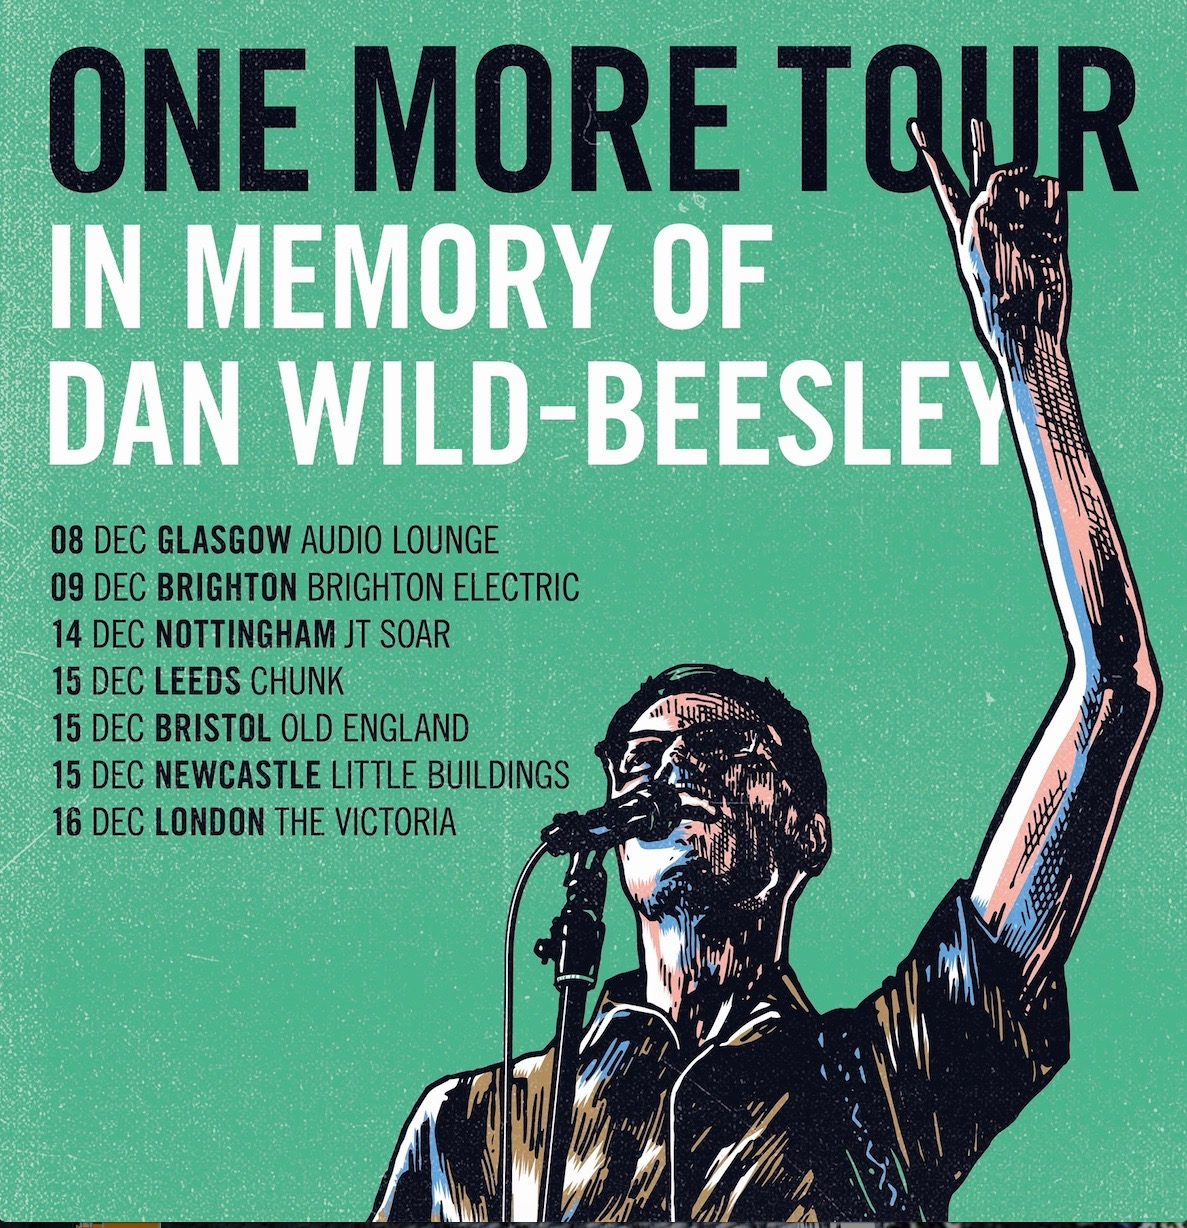 Portals presents: One More Tour - A Tribute to Dan Wild-Beesley at The Victoria promotional image